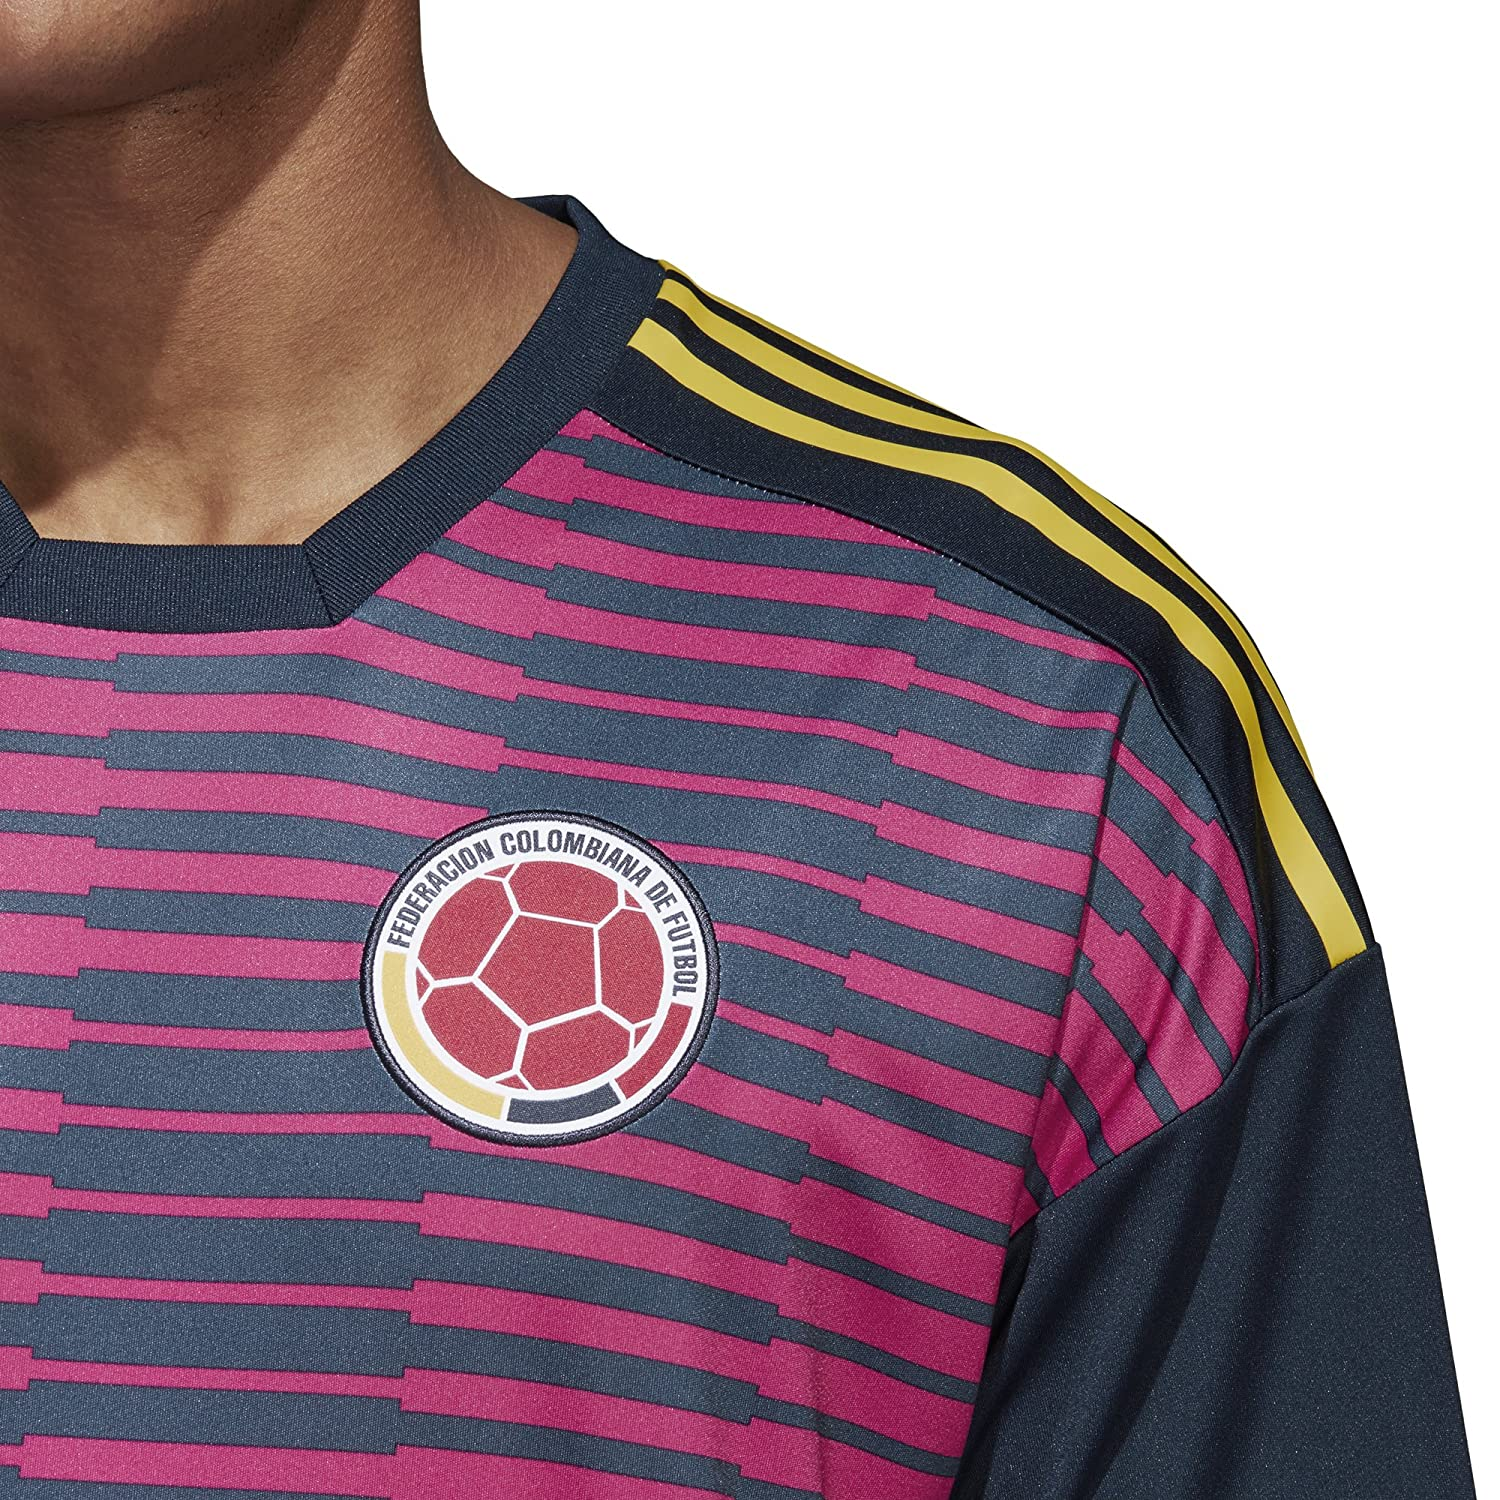 Amazon.com : adidas 2018-2019 Colombia Pre-Match Football Soccer T-Shirt Jersey (Pink) : Sports & Outdoors